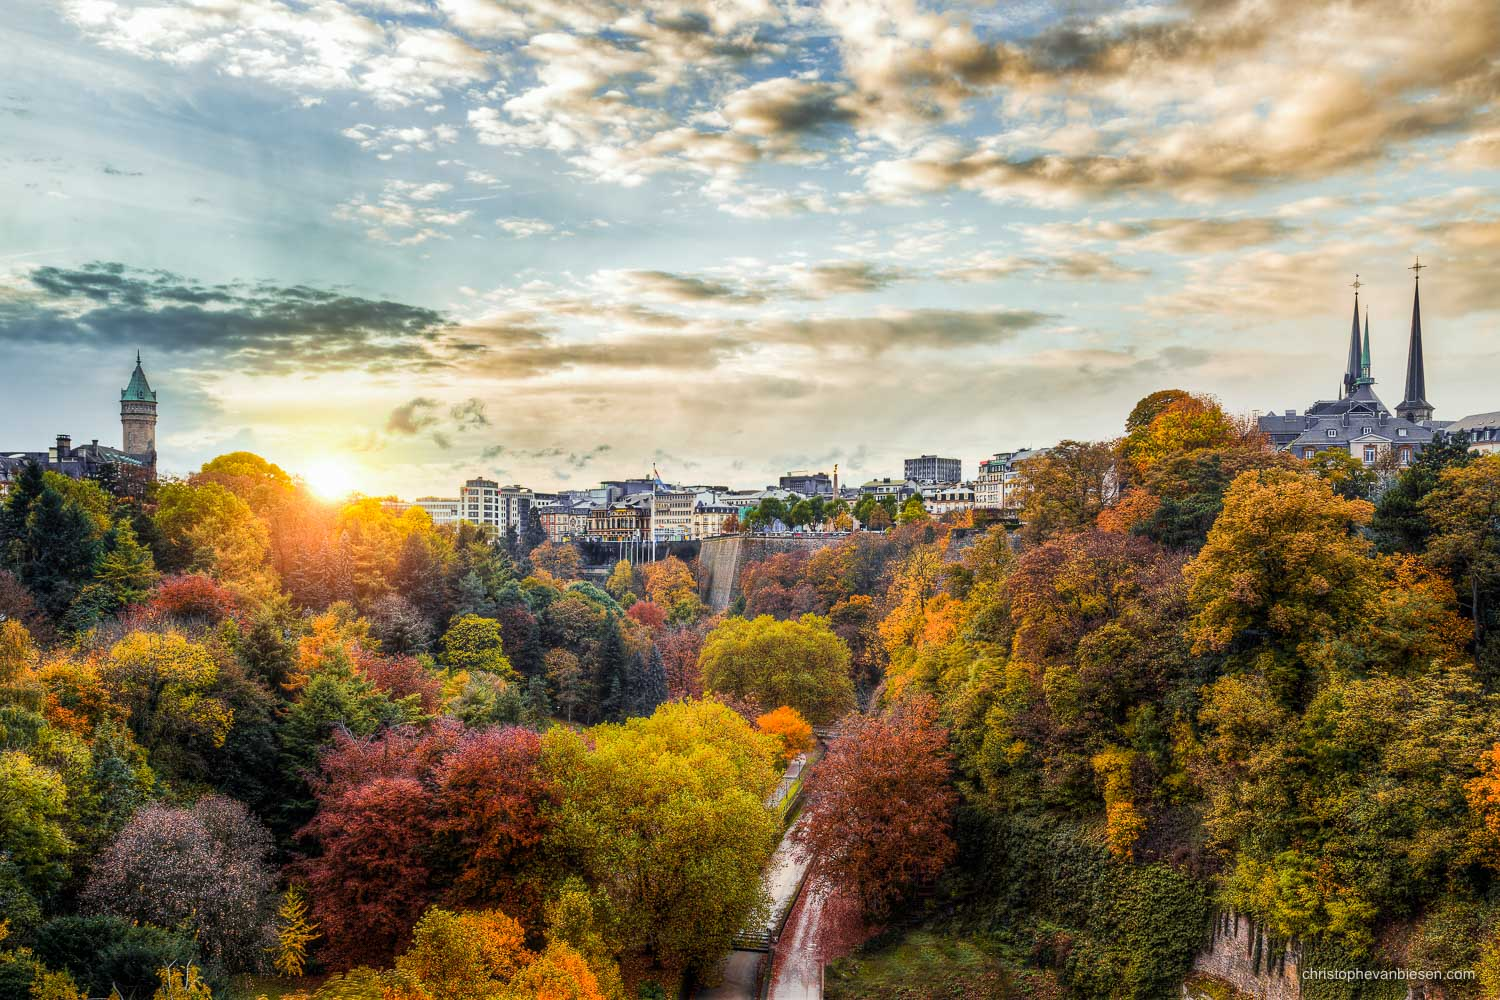 Autumn in Luxembourg - Autumn view over the Petrusse valley with the BCEE tower and the rooftops of the Notre-Dame Cathedral in Autumn in Luxembourg - City Ablaze